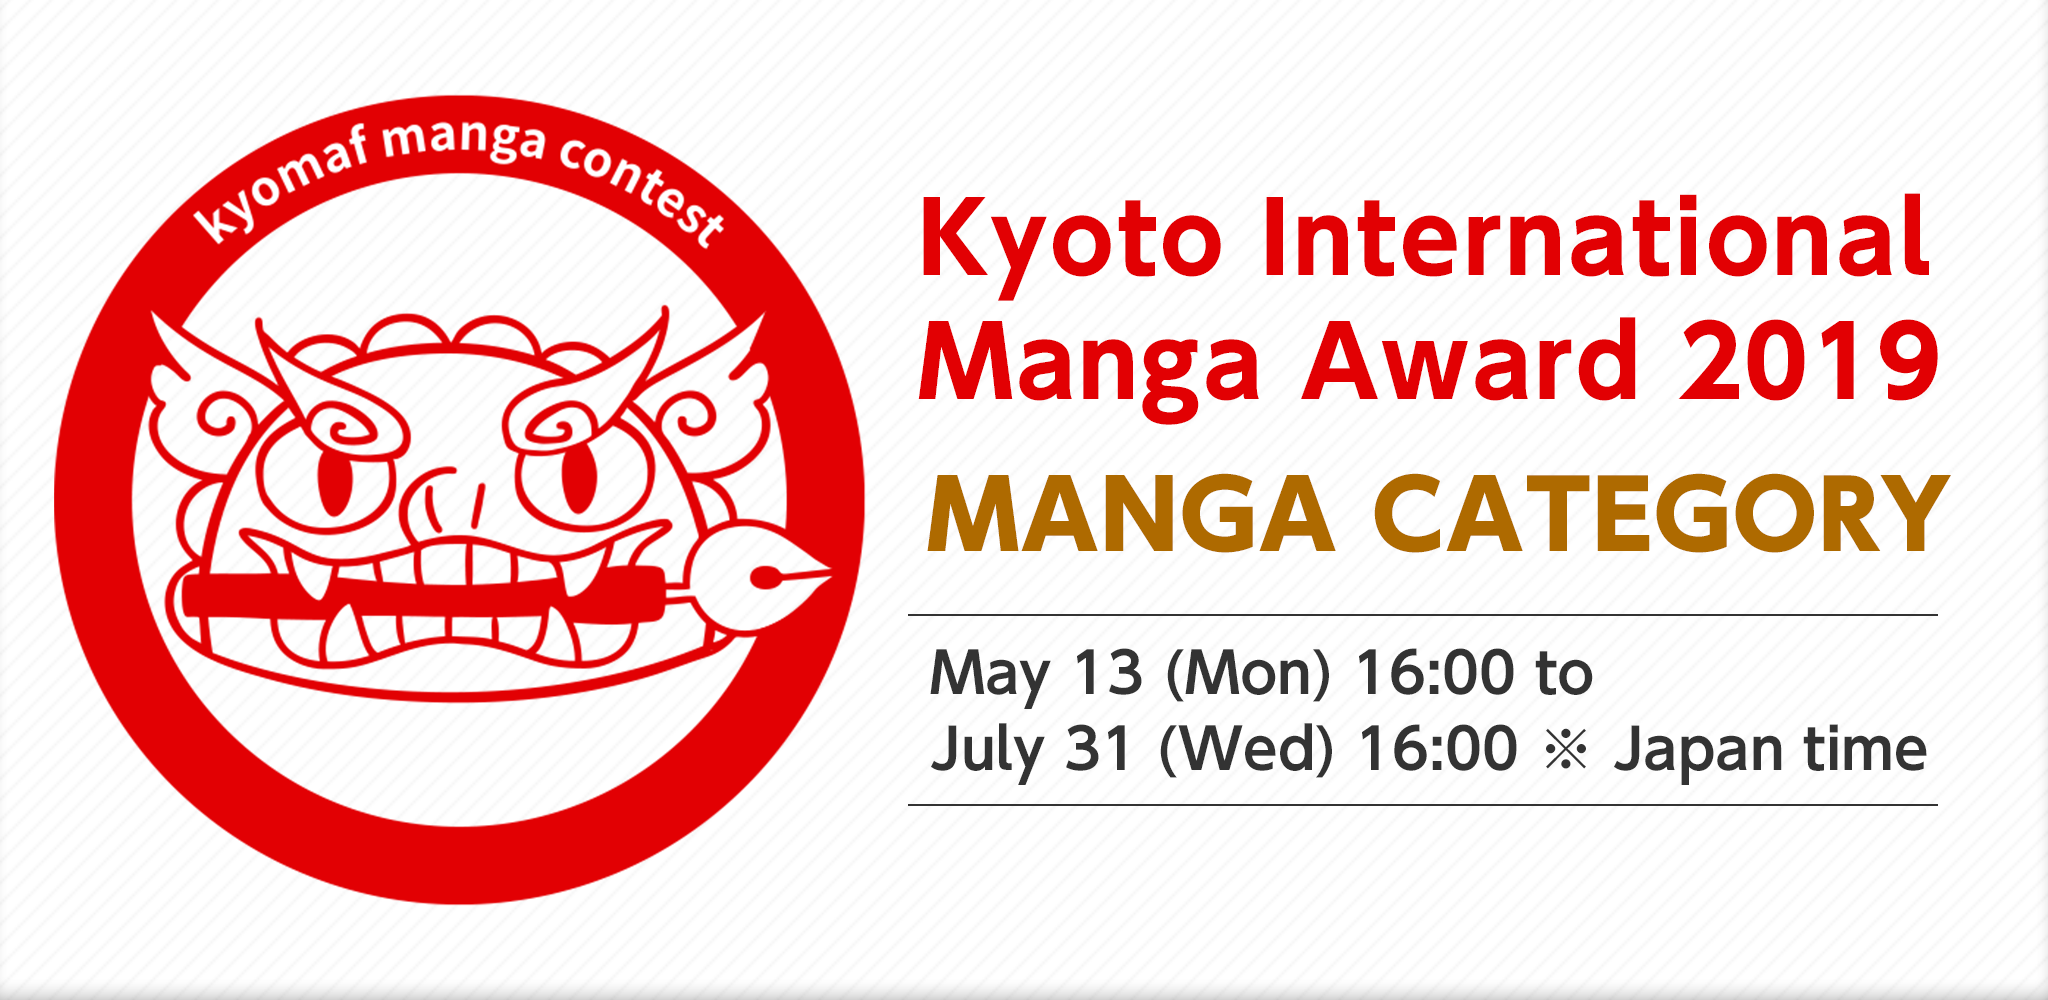 Kyoto International Manga Award 2019 | Contest  - ART street by MediBang